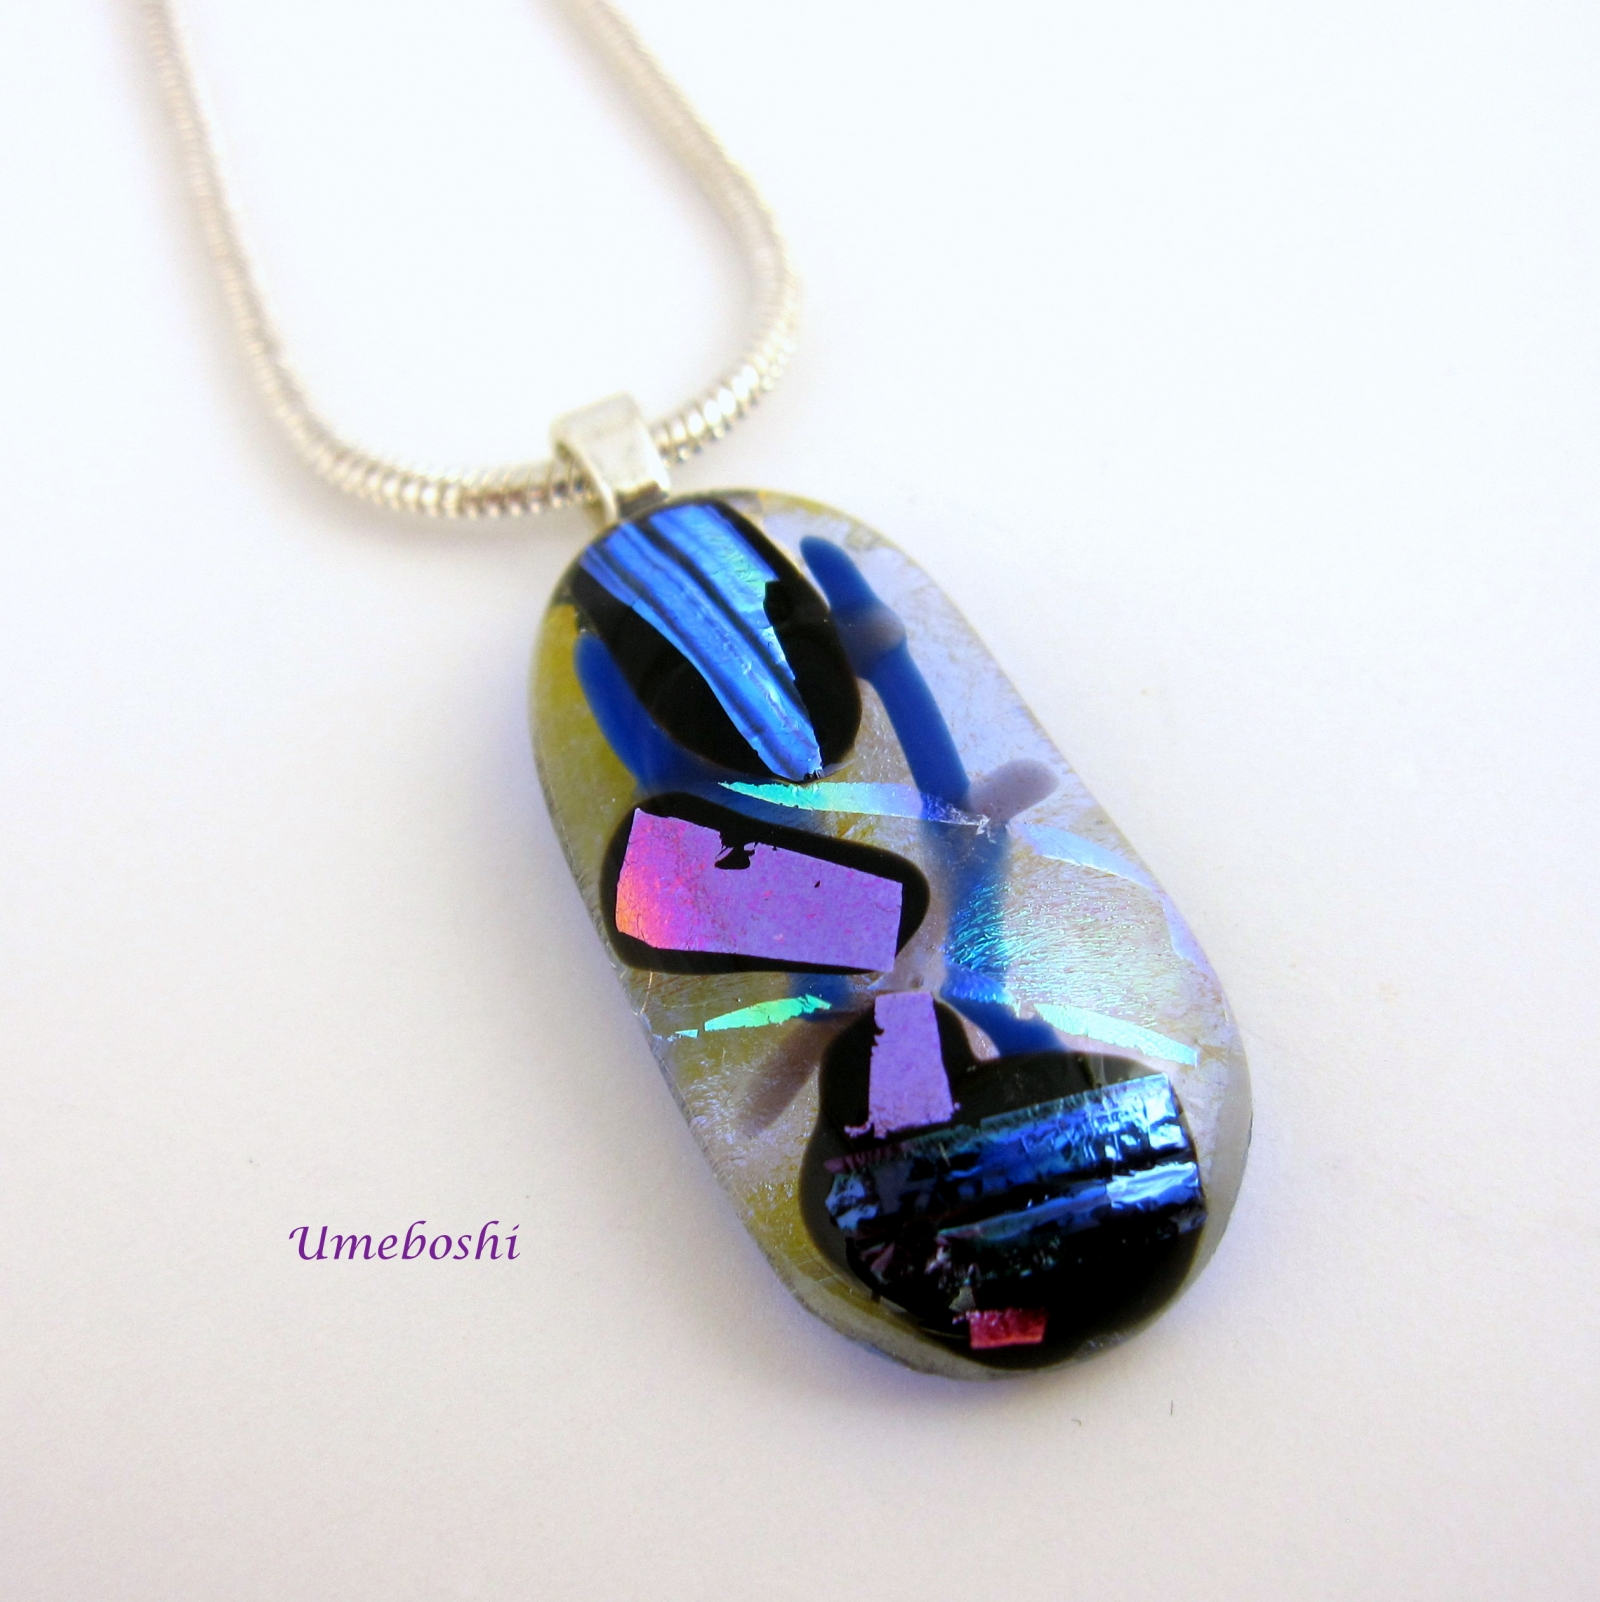 fused by laser in animal creations dichroic custom pendants glass pendant made etched